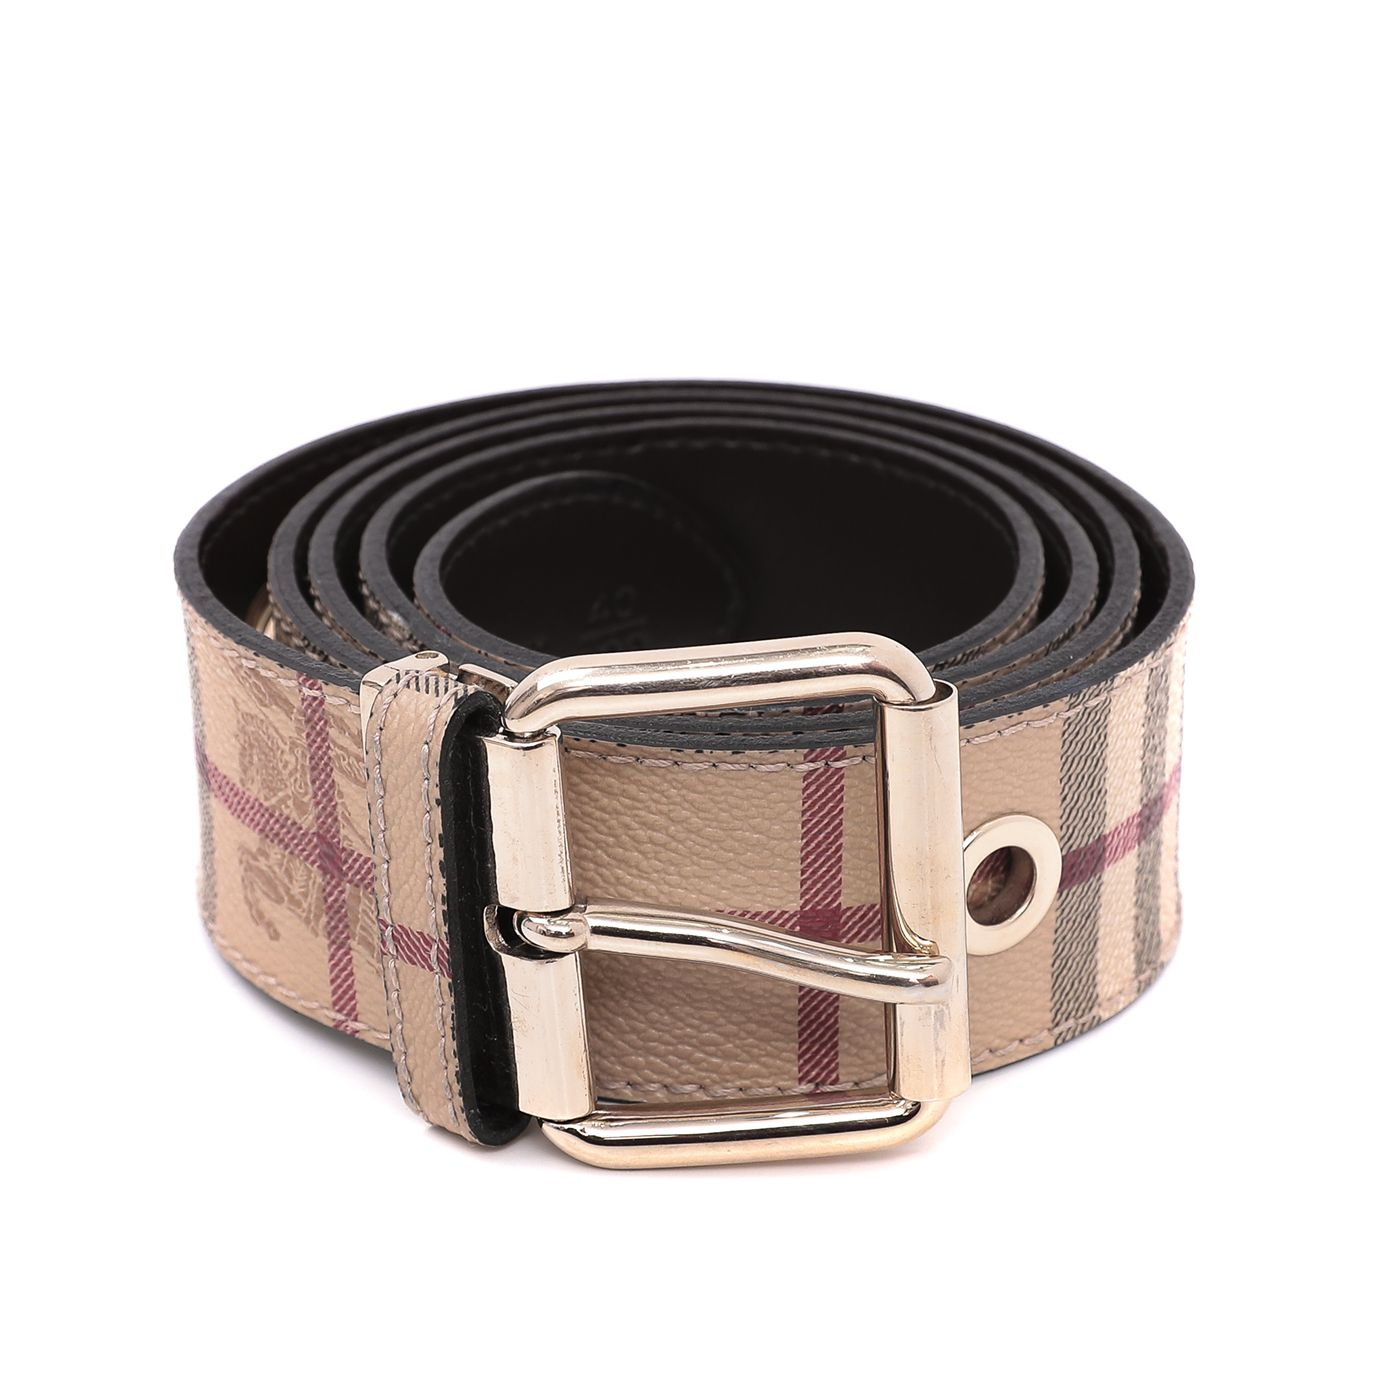 Burberry Bicolor Haymarket Gold Eyelet Belt 40/100